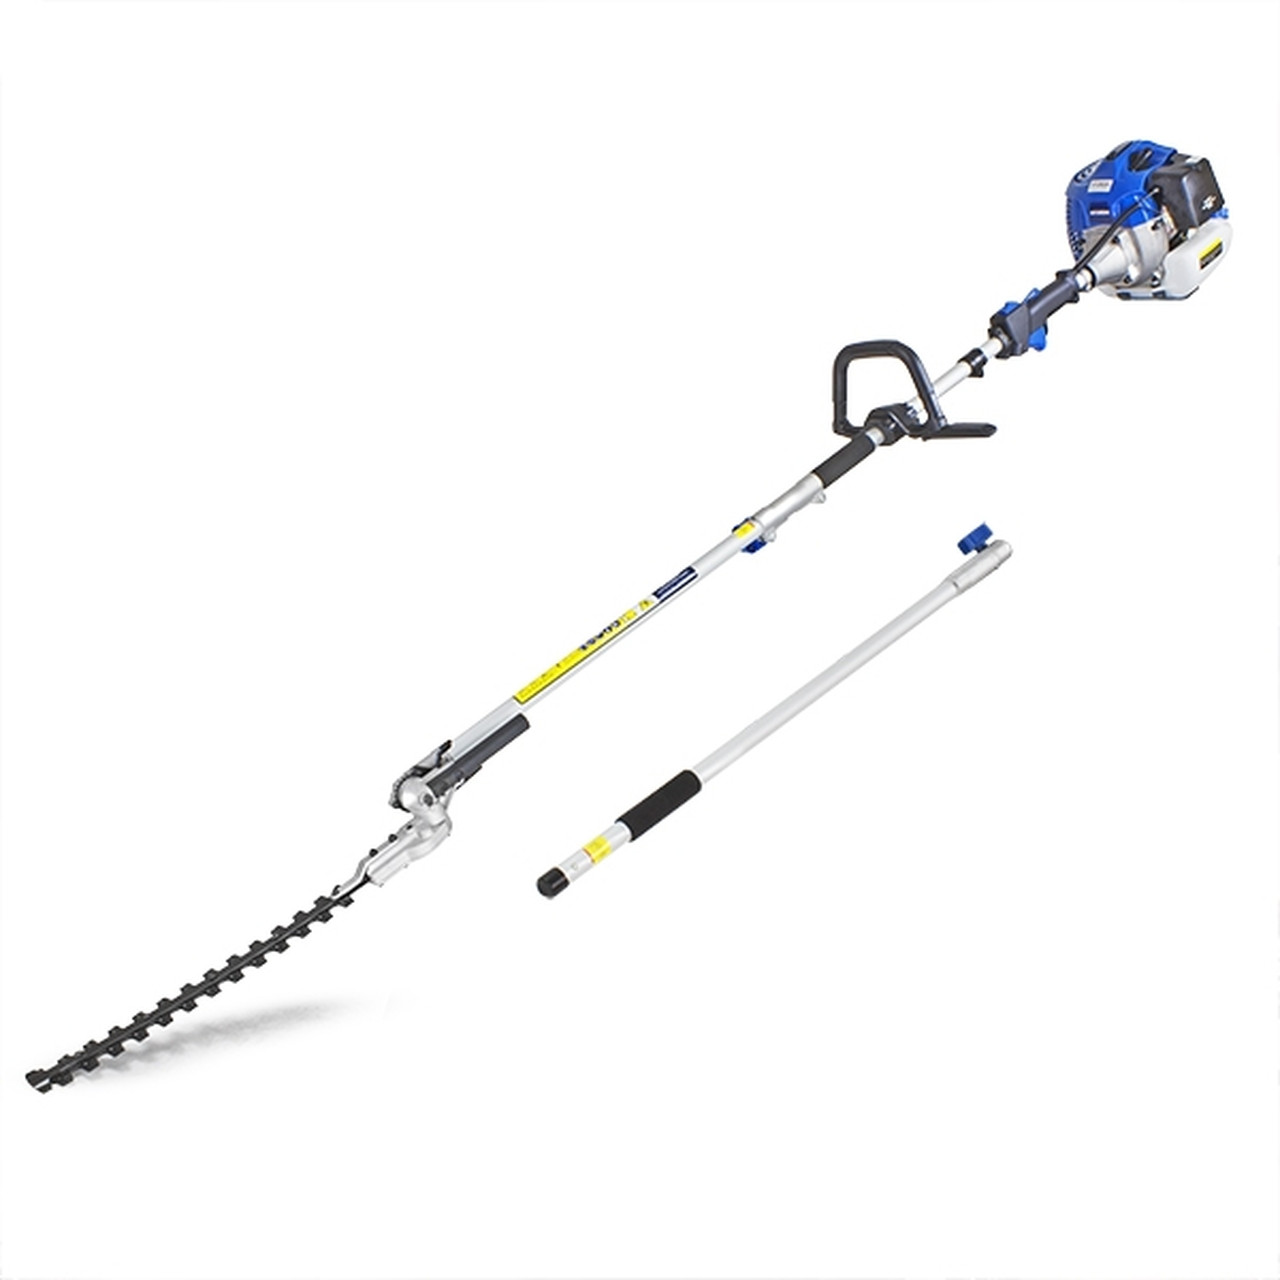 Hyundai's HYPT5200X Long Reach Petrol Pole Hedge Trimmer, Pruner is a 52cc long reach petrol pole hedge trimmer. Designed to produce tremendous cutting power on tall and difficult-to-reach hedges.